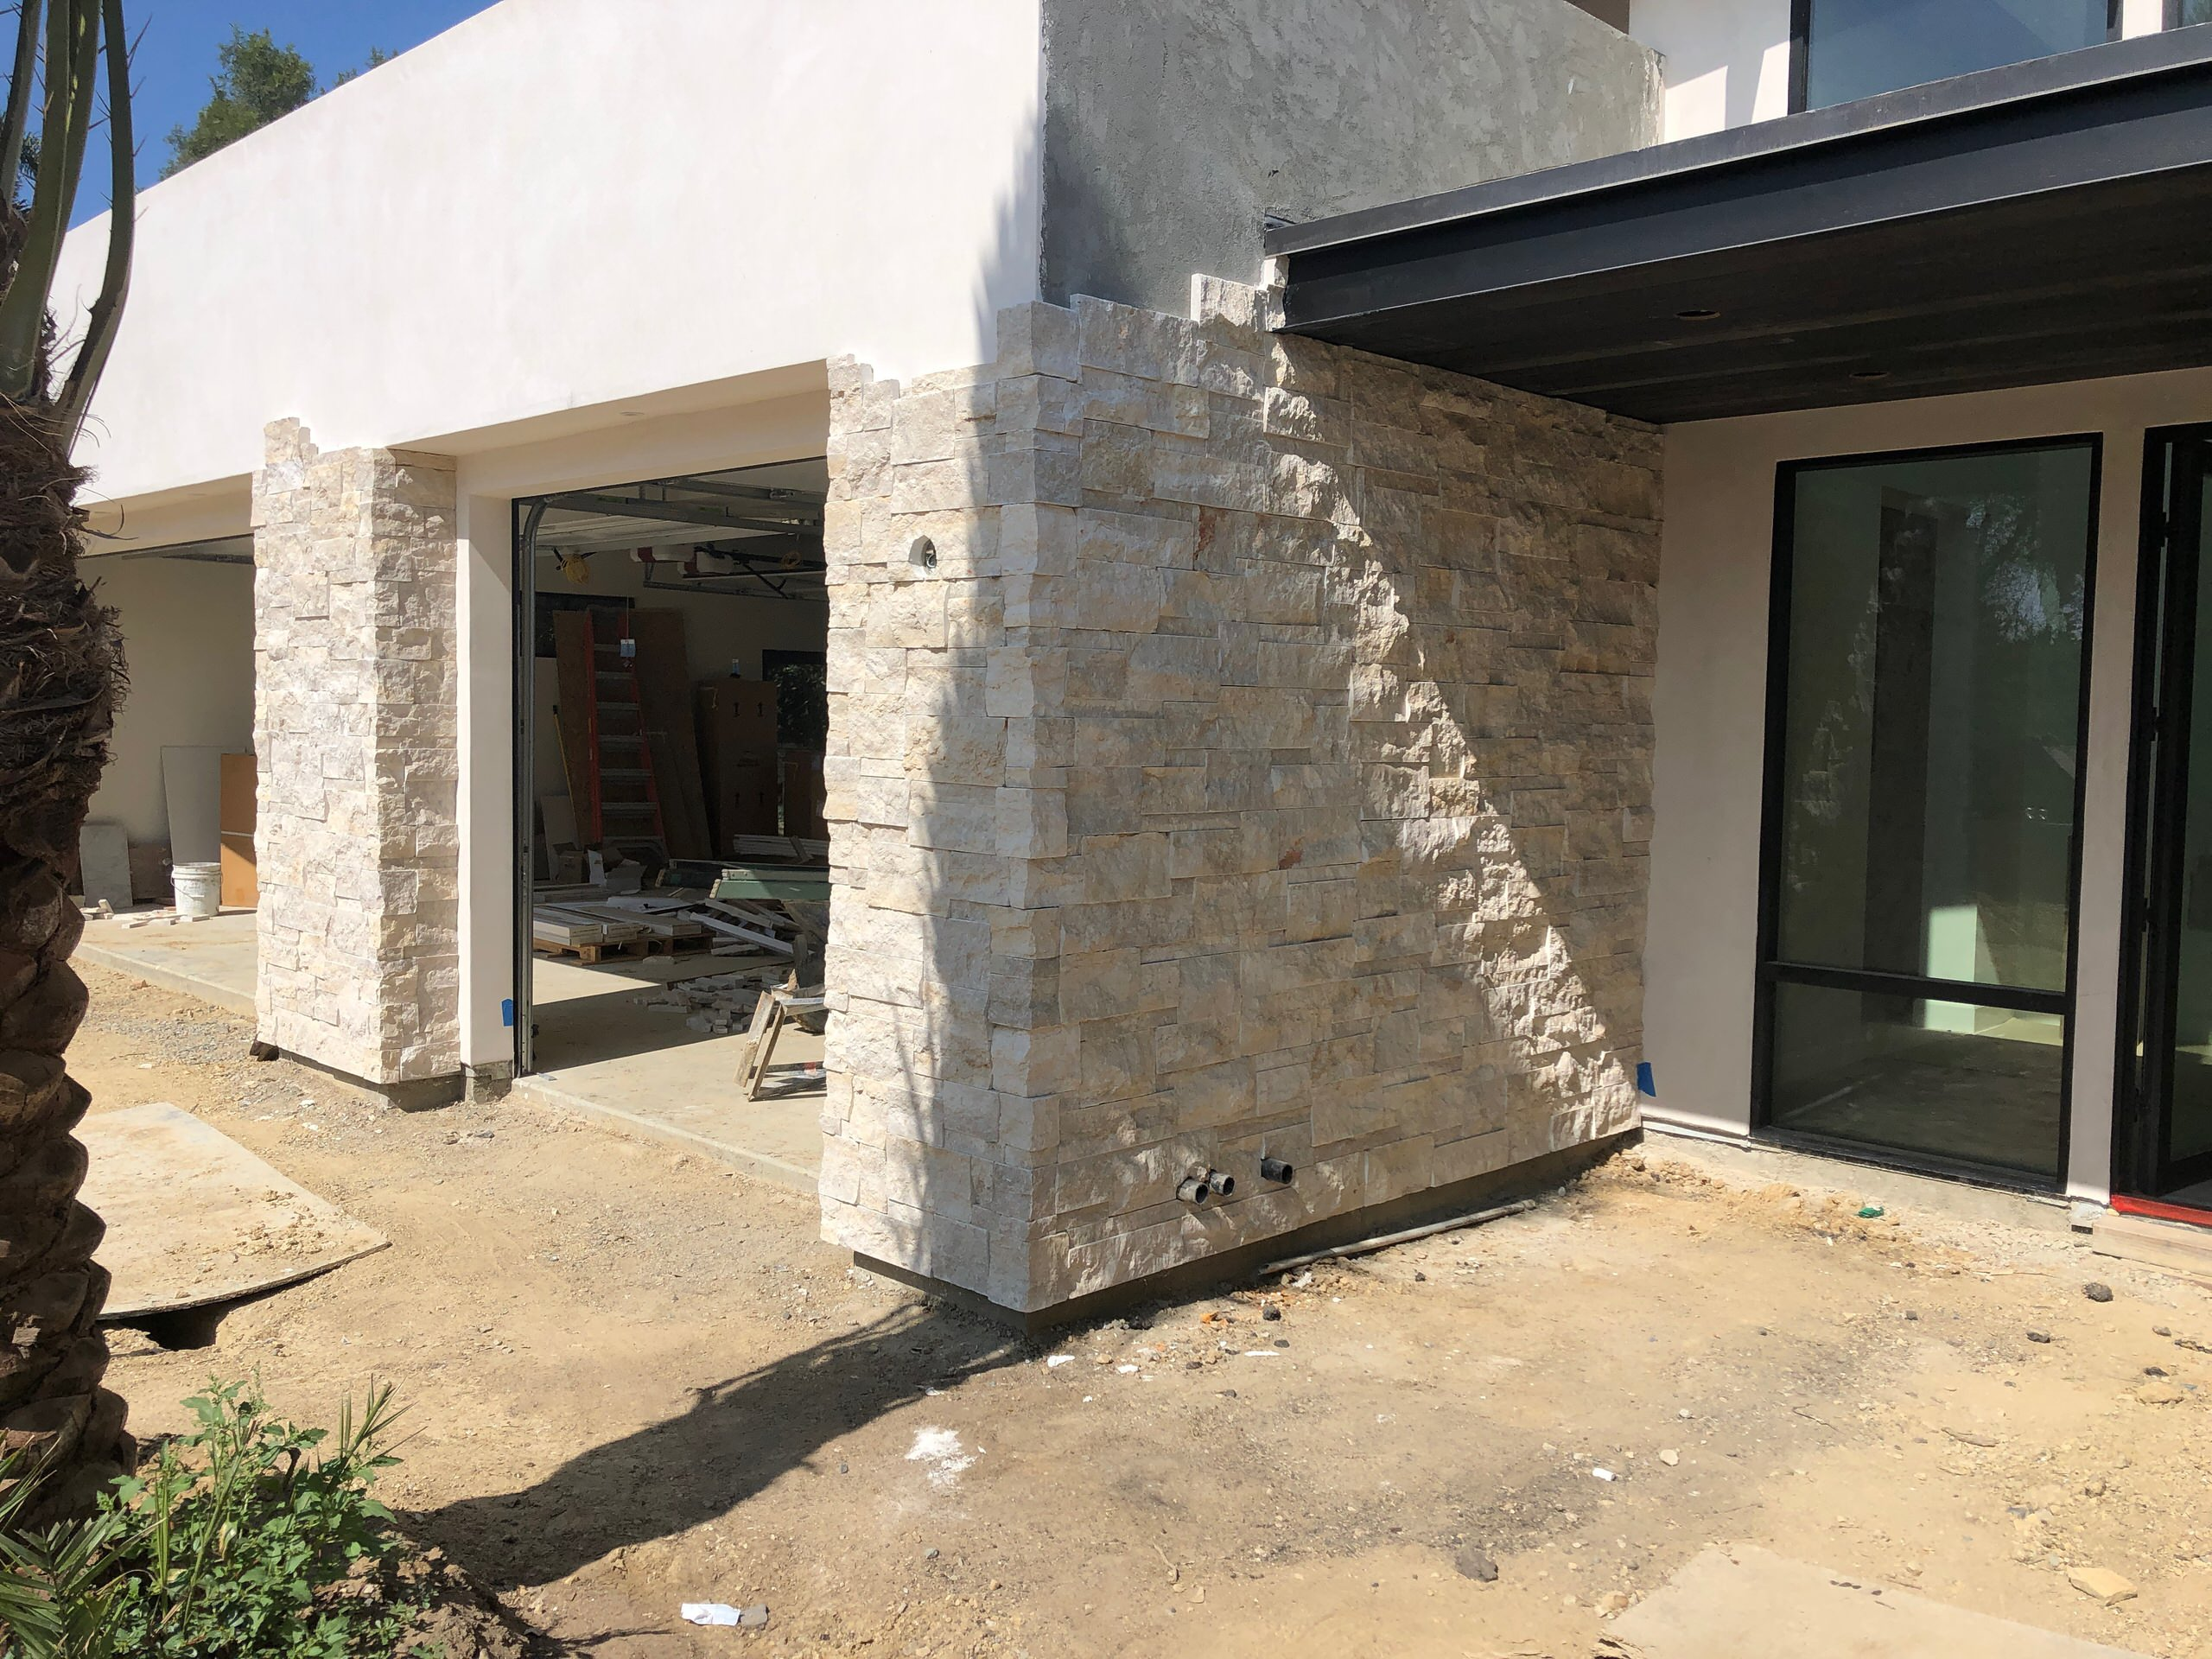 Installing Stone Veneer to a House & Garage Wall